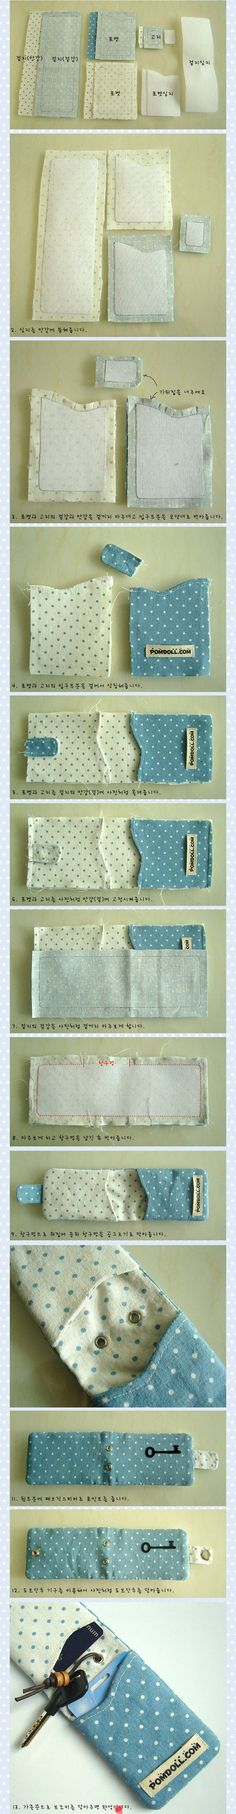 Two slot card and key holder | free picture tutorial, diy, free pattern, Korean text